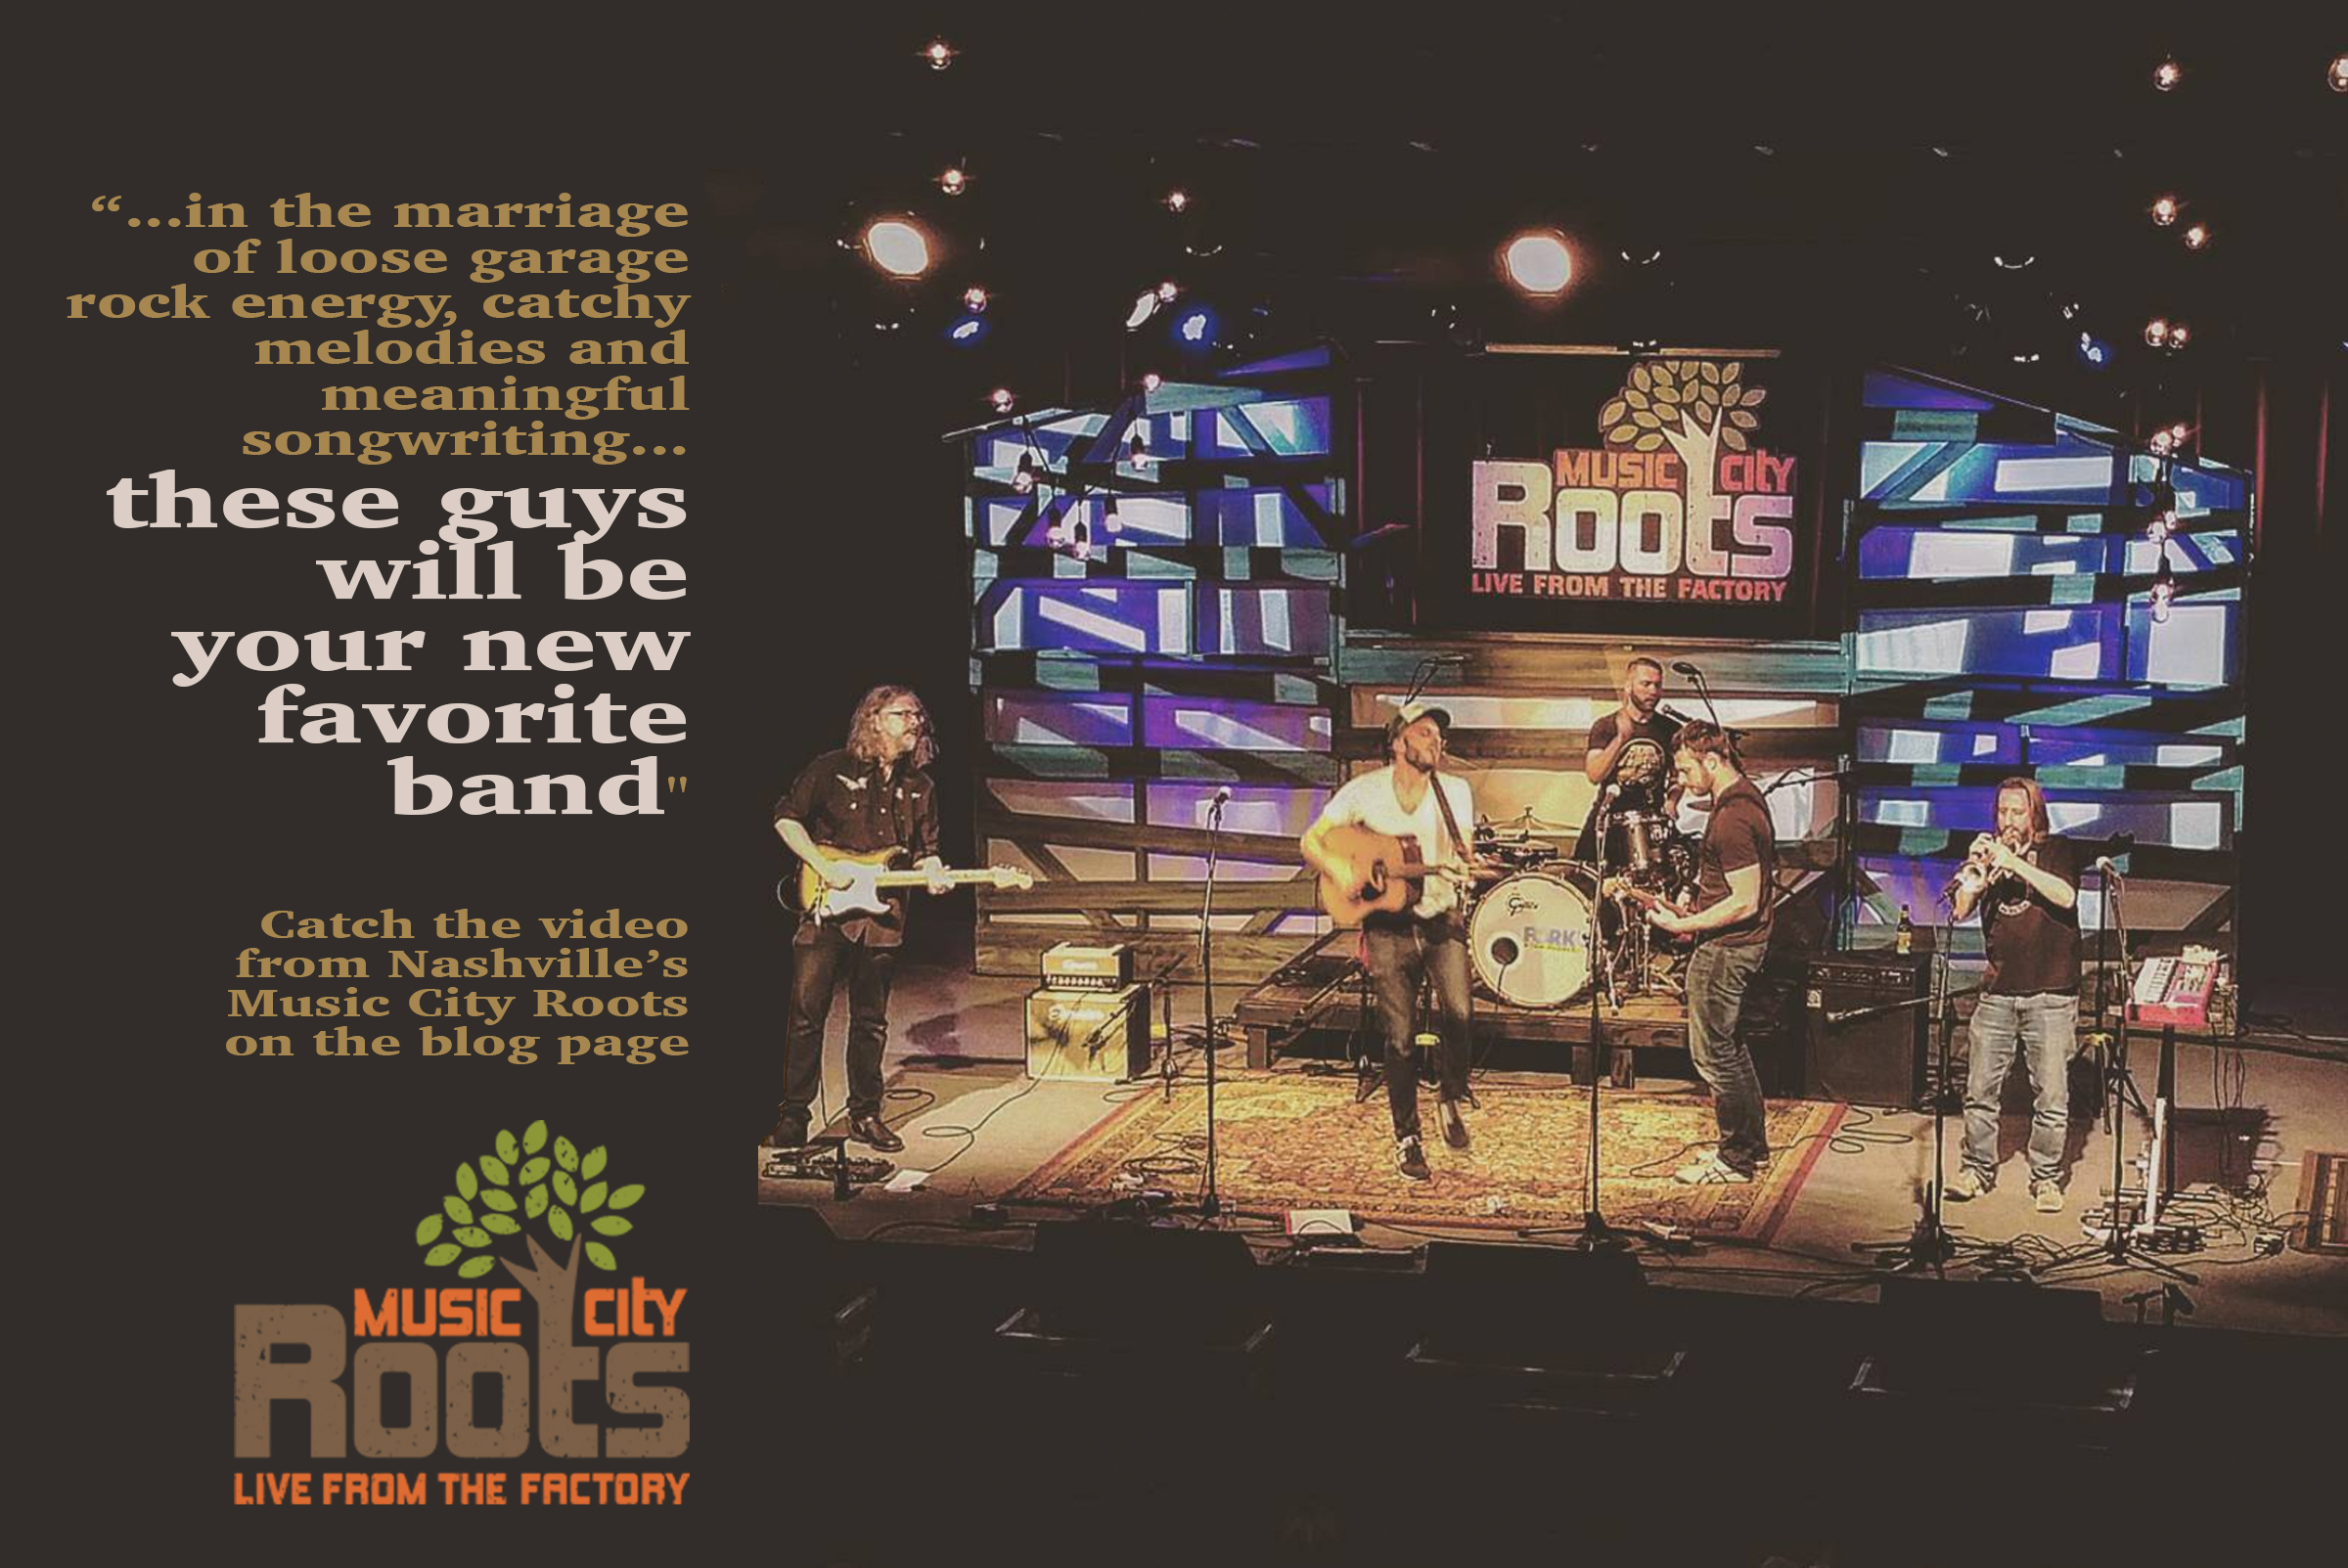 head to blog for Music City Roots video